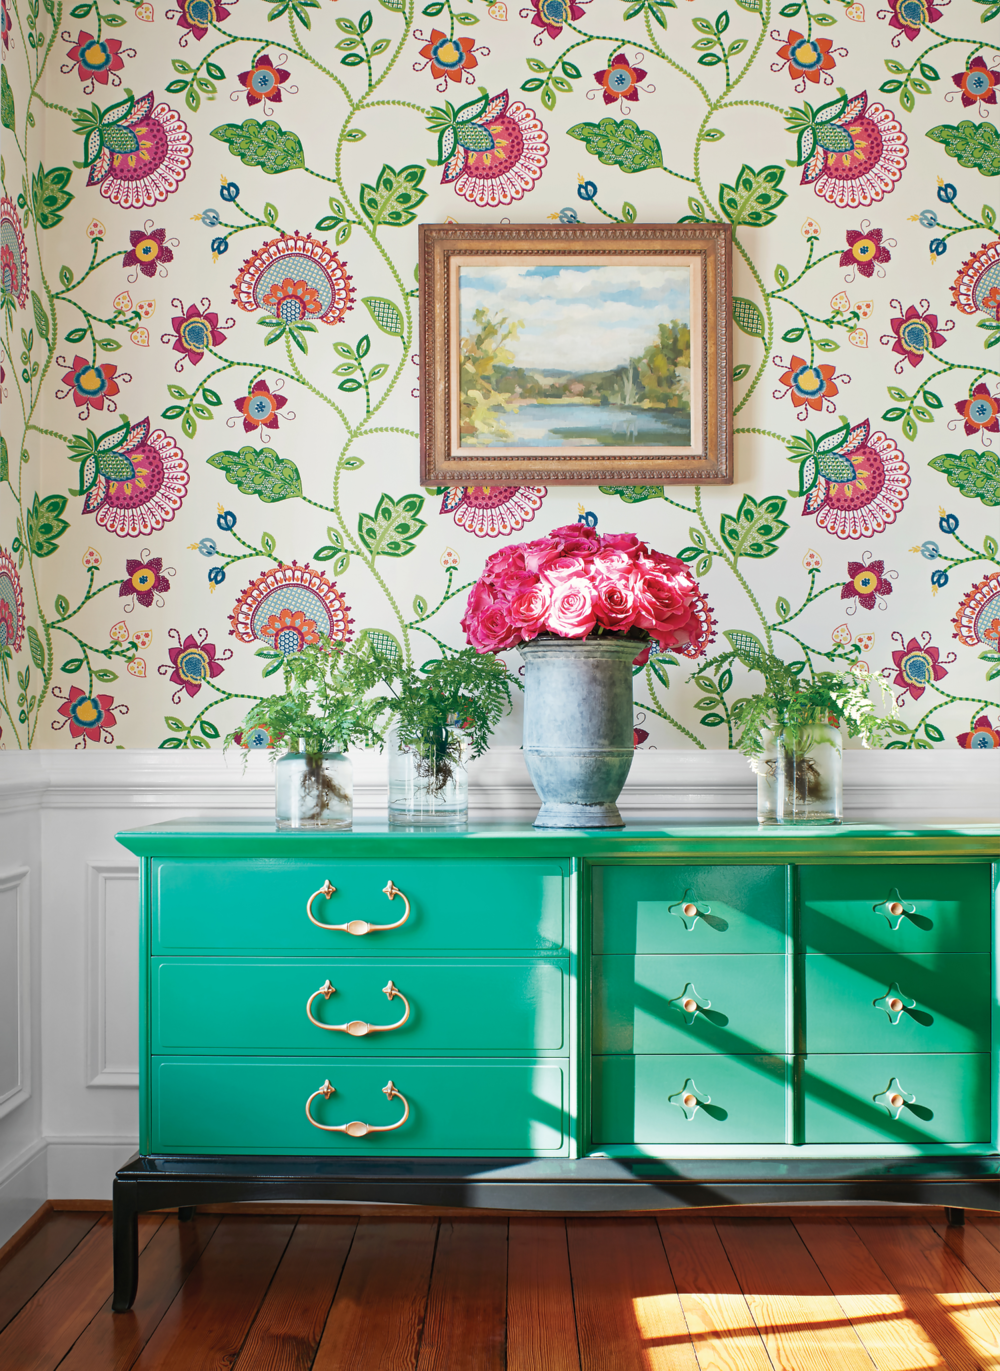 Pretty painted chest set against the backdrop of Thibaut's Portofino wall covering. These large, stylized, flowers and other fun details make this a striking accent wall. The wallpaper is rotary screen printed, which uses a lot of ink to make the flowers slightly textured. Photo credit: Courtesy of Thibaut.  www.thibautdesign.com